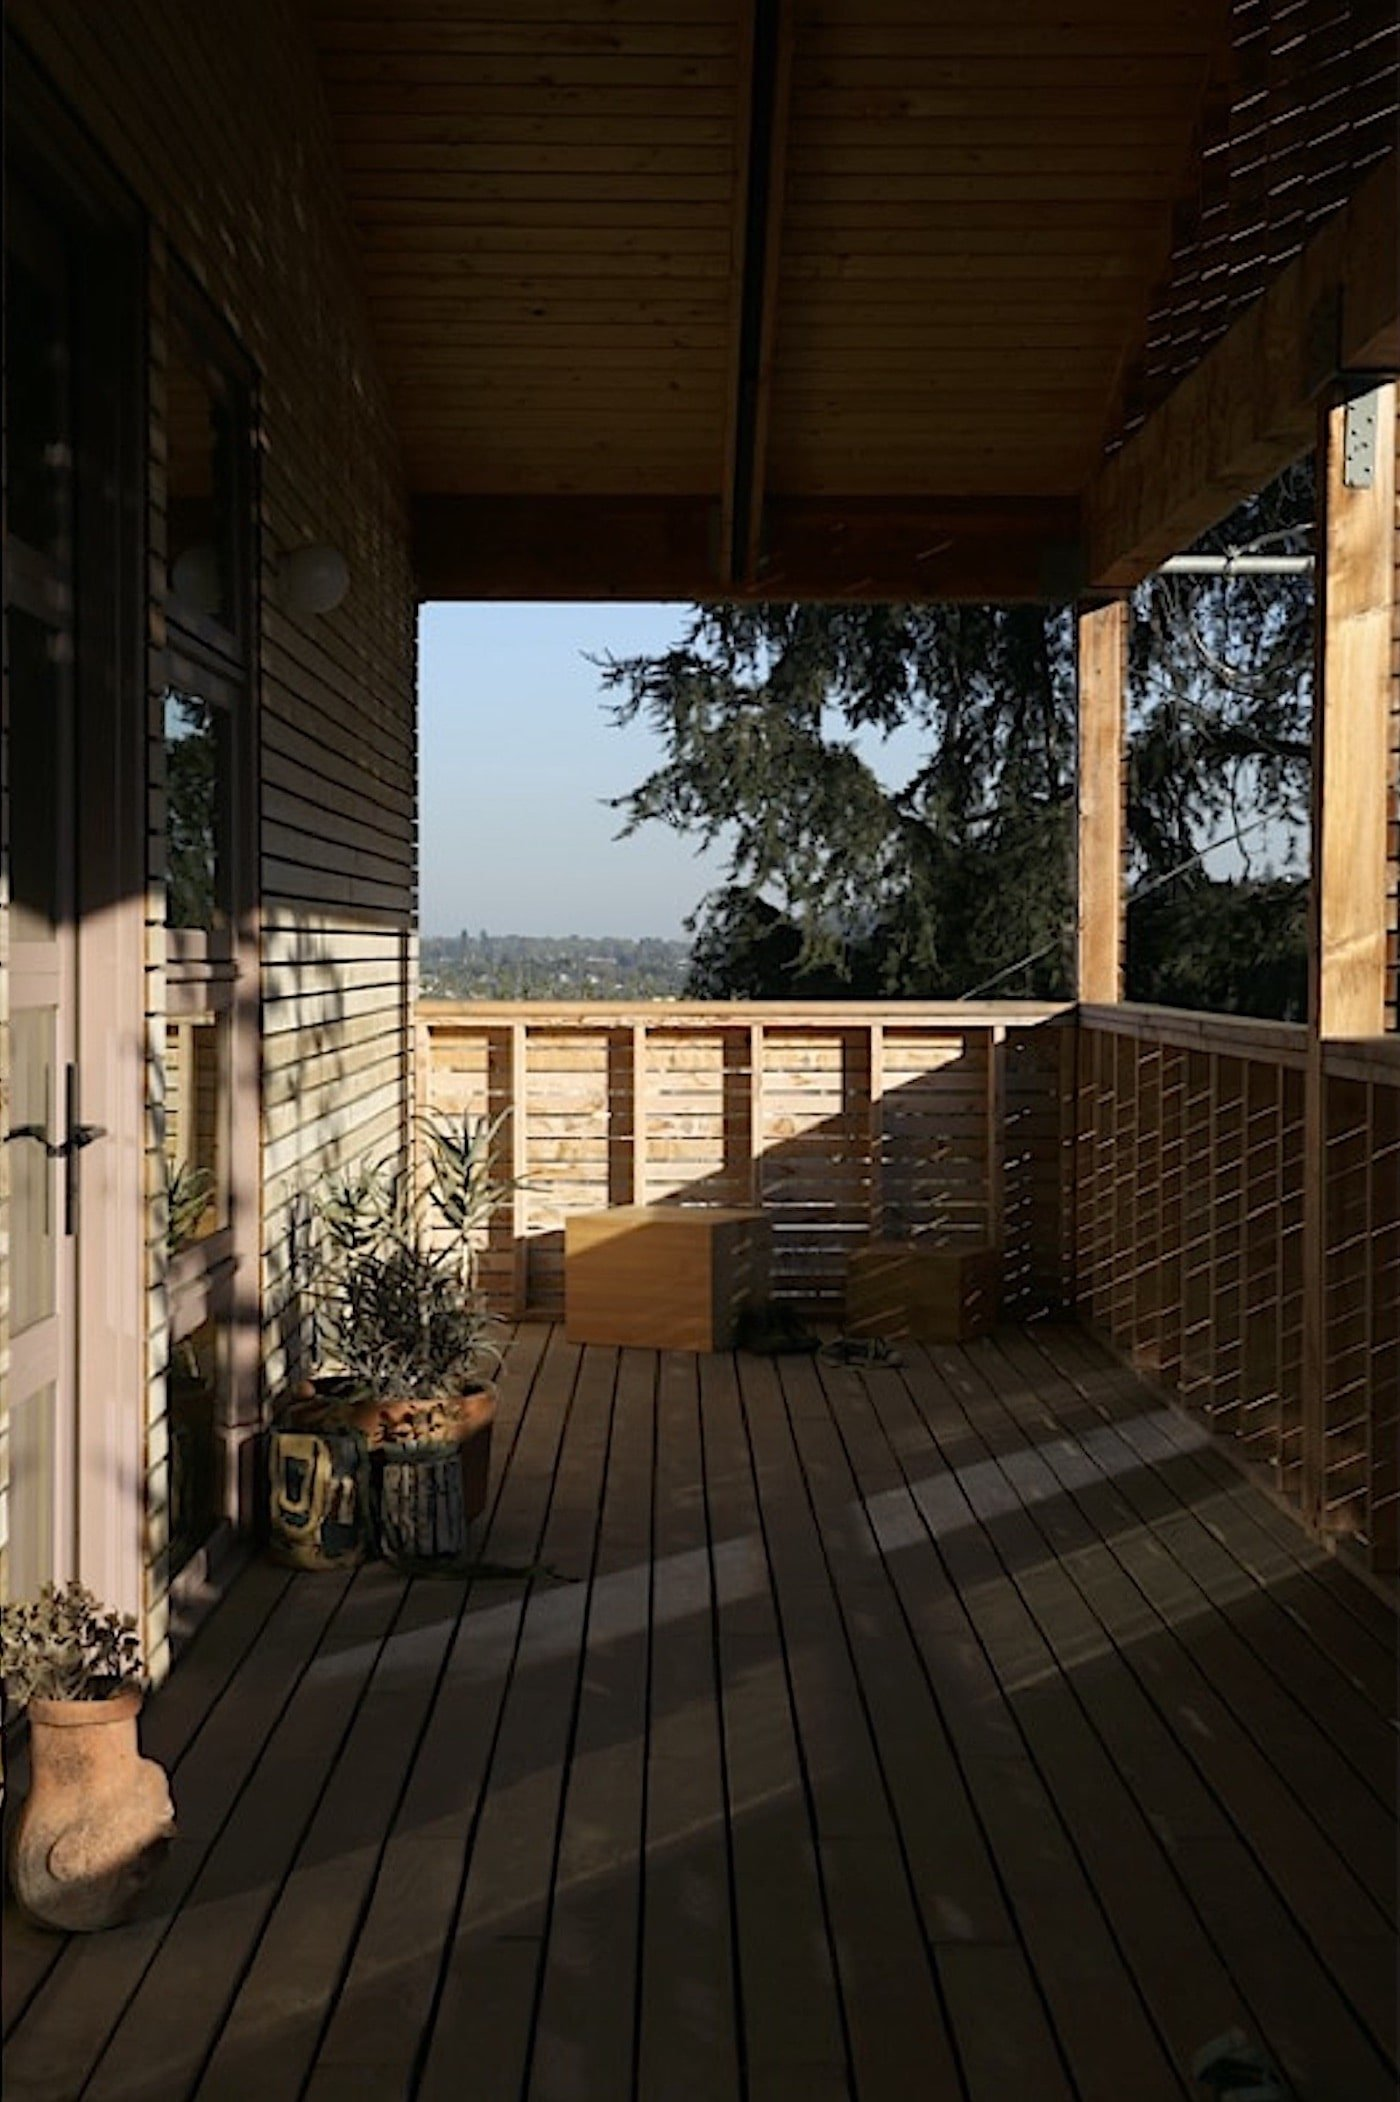 Timber deck with views towards the mountains